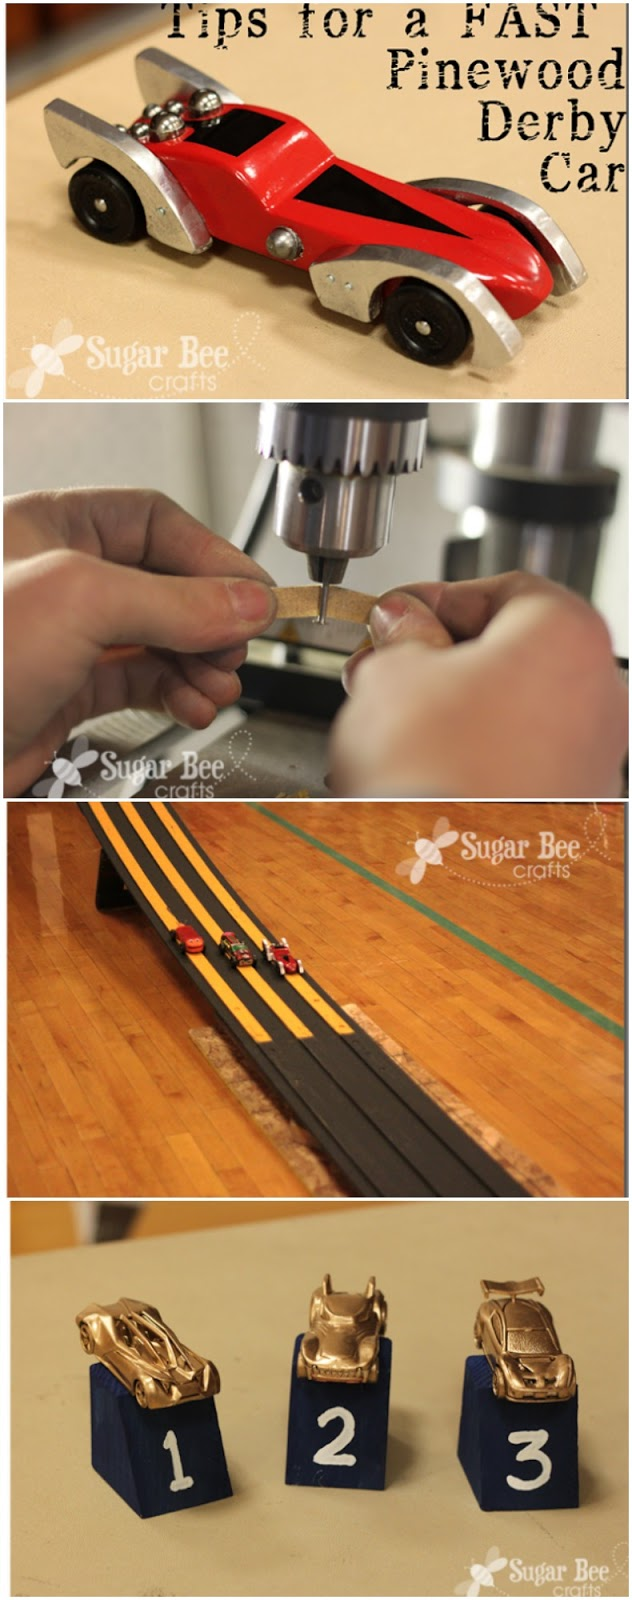 pinewood derby tips tricks how to make your car faster wheels